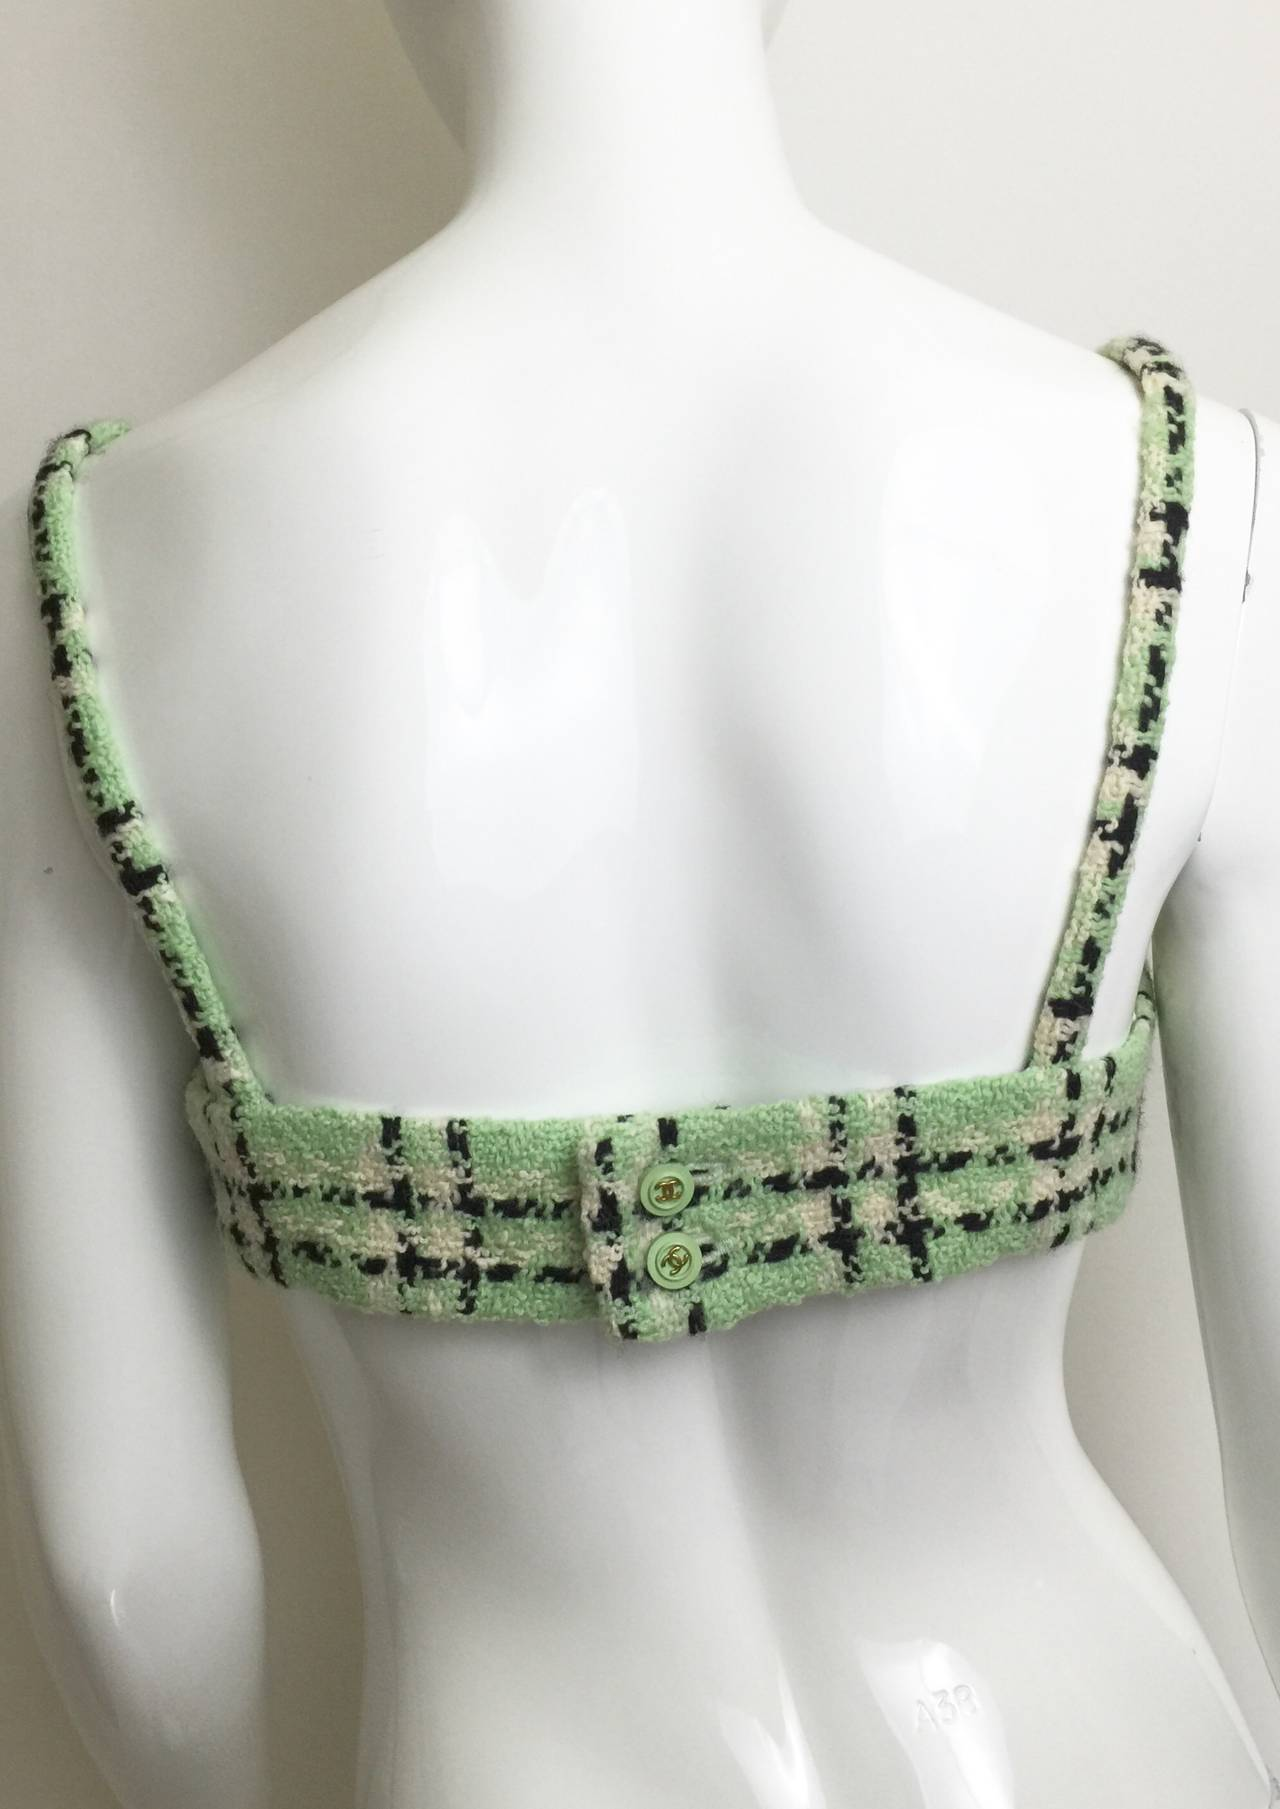 Vintage Chanel 1994 Runway Boucle Bra Top Rare with Tags 6